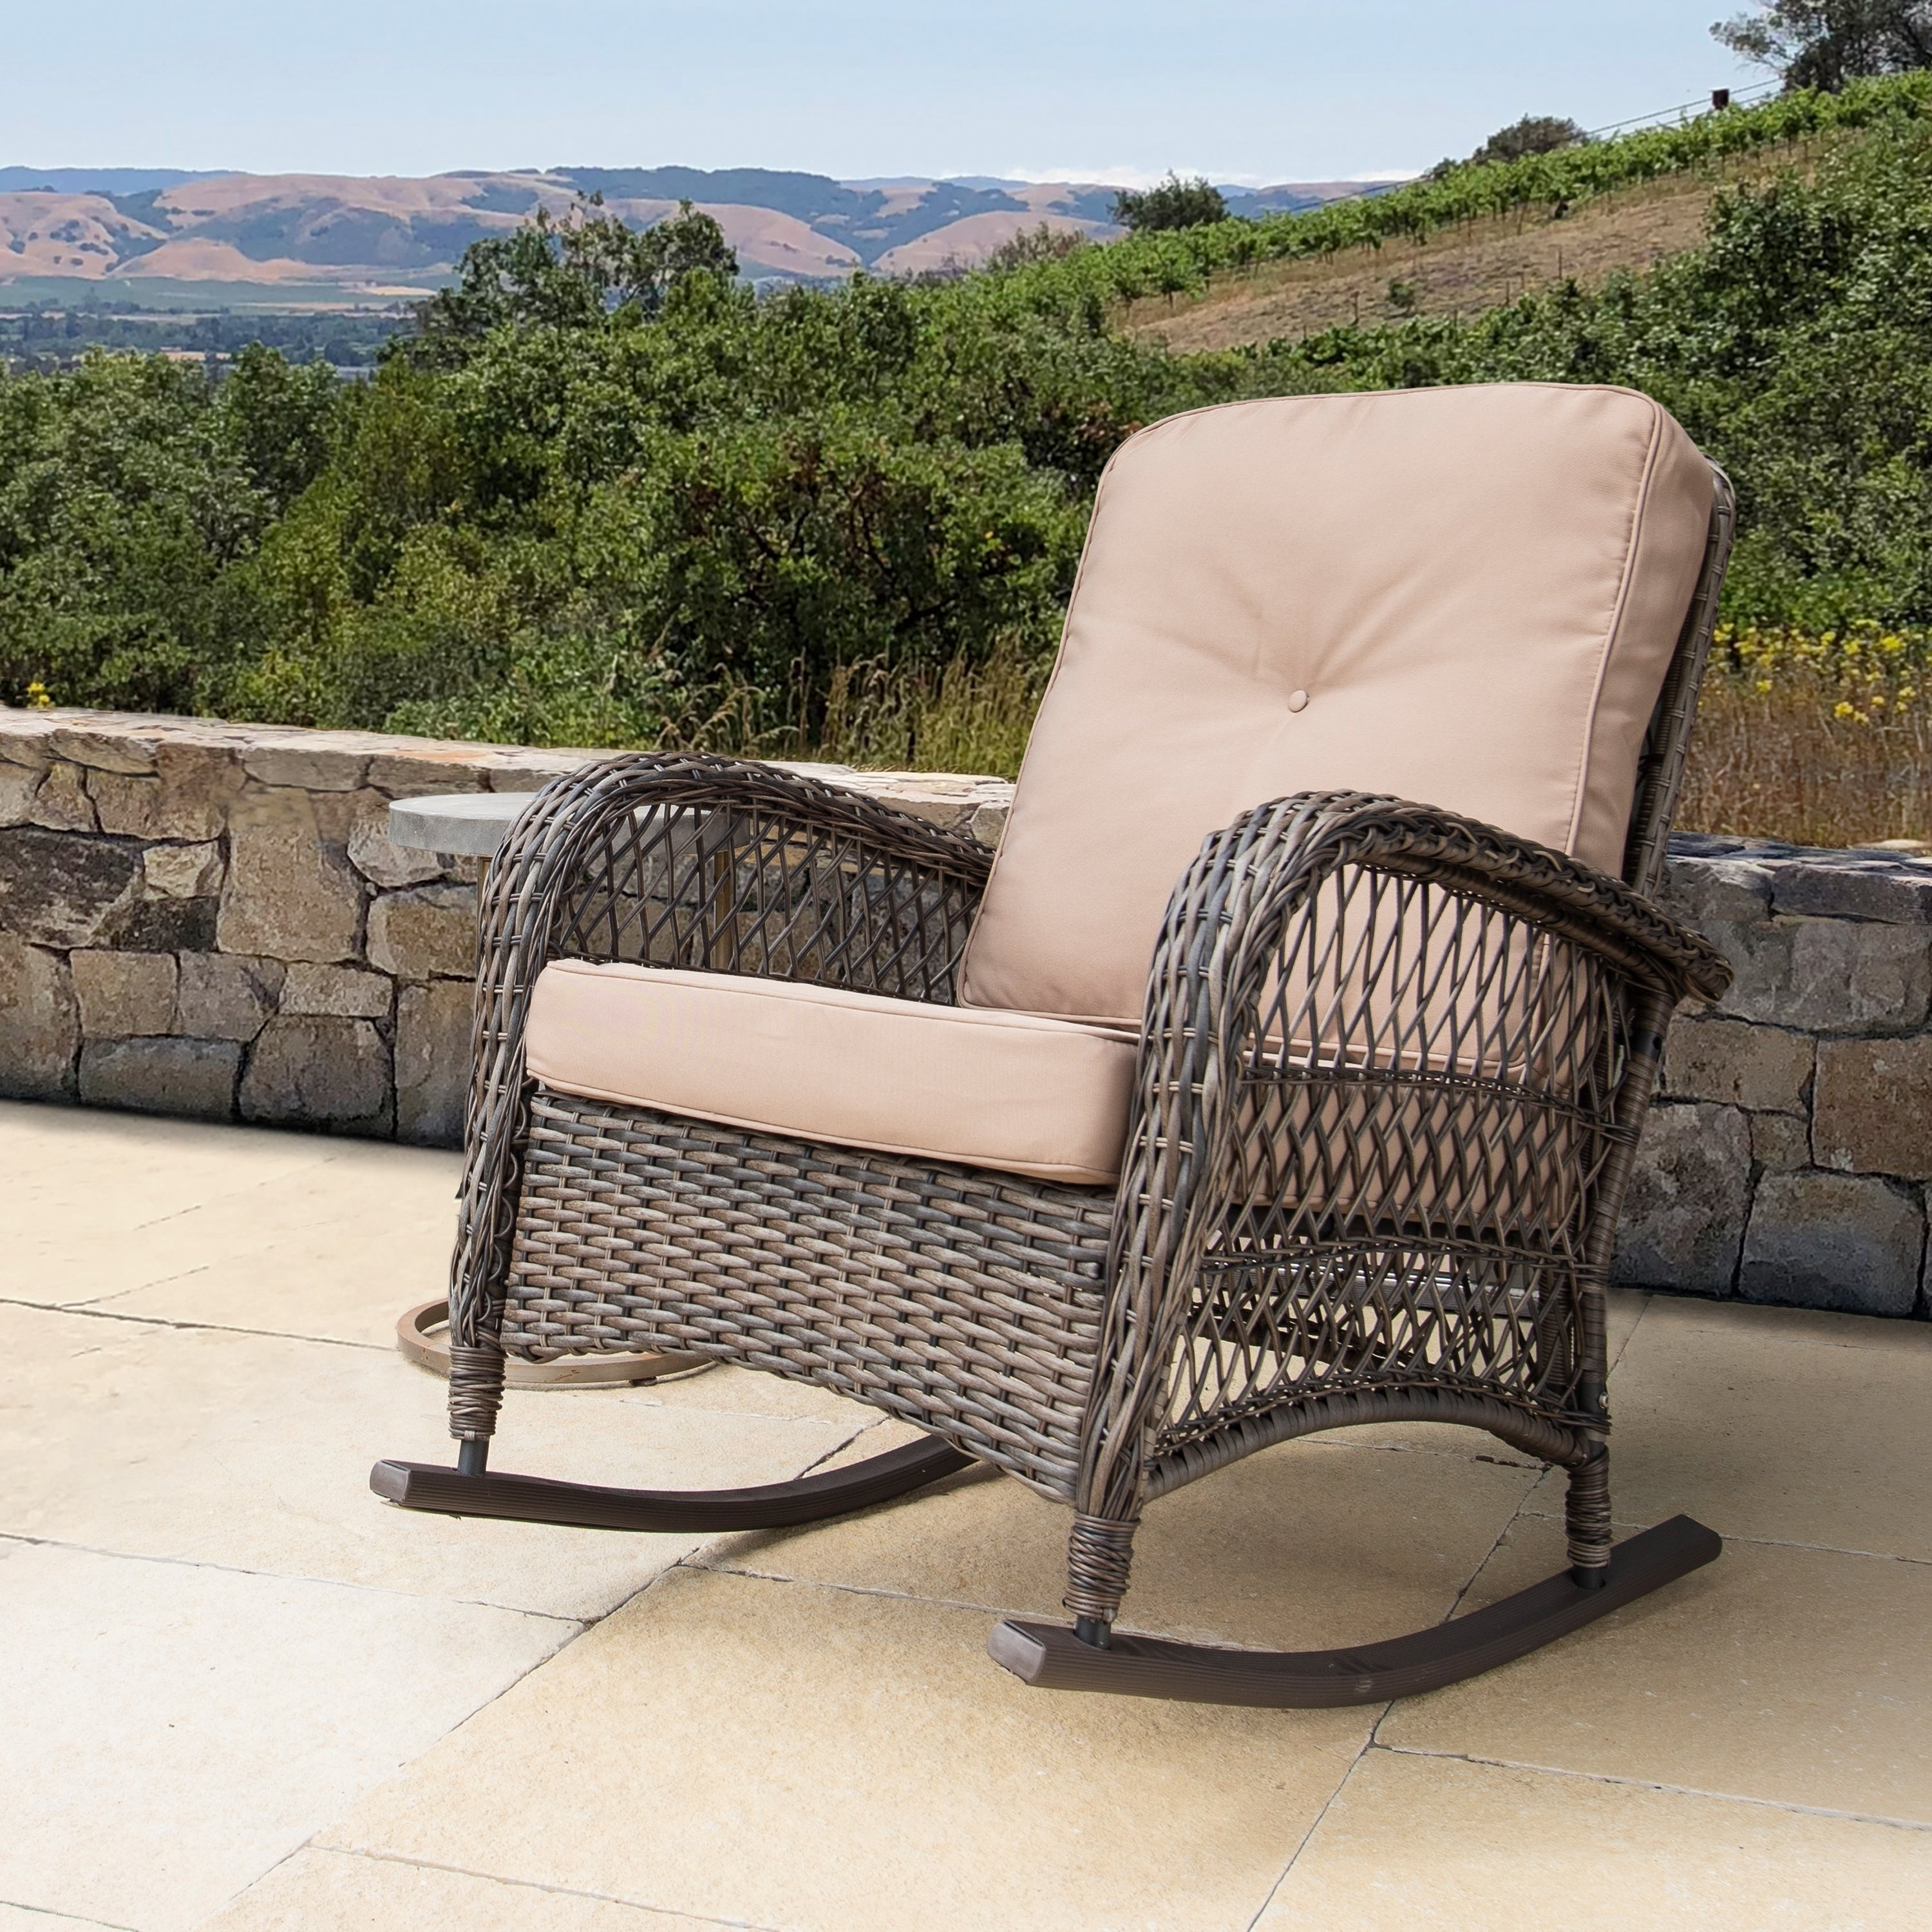 Corvus Rno Outdoor Wicker Rocking Chair With Cushions